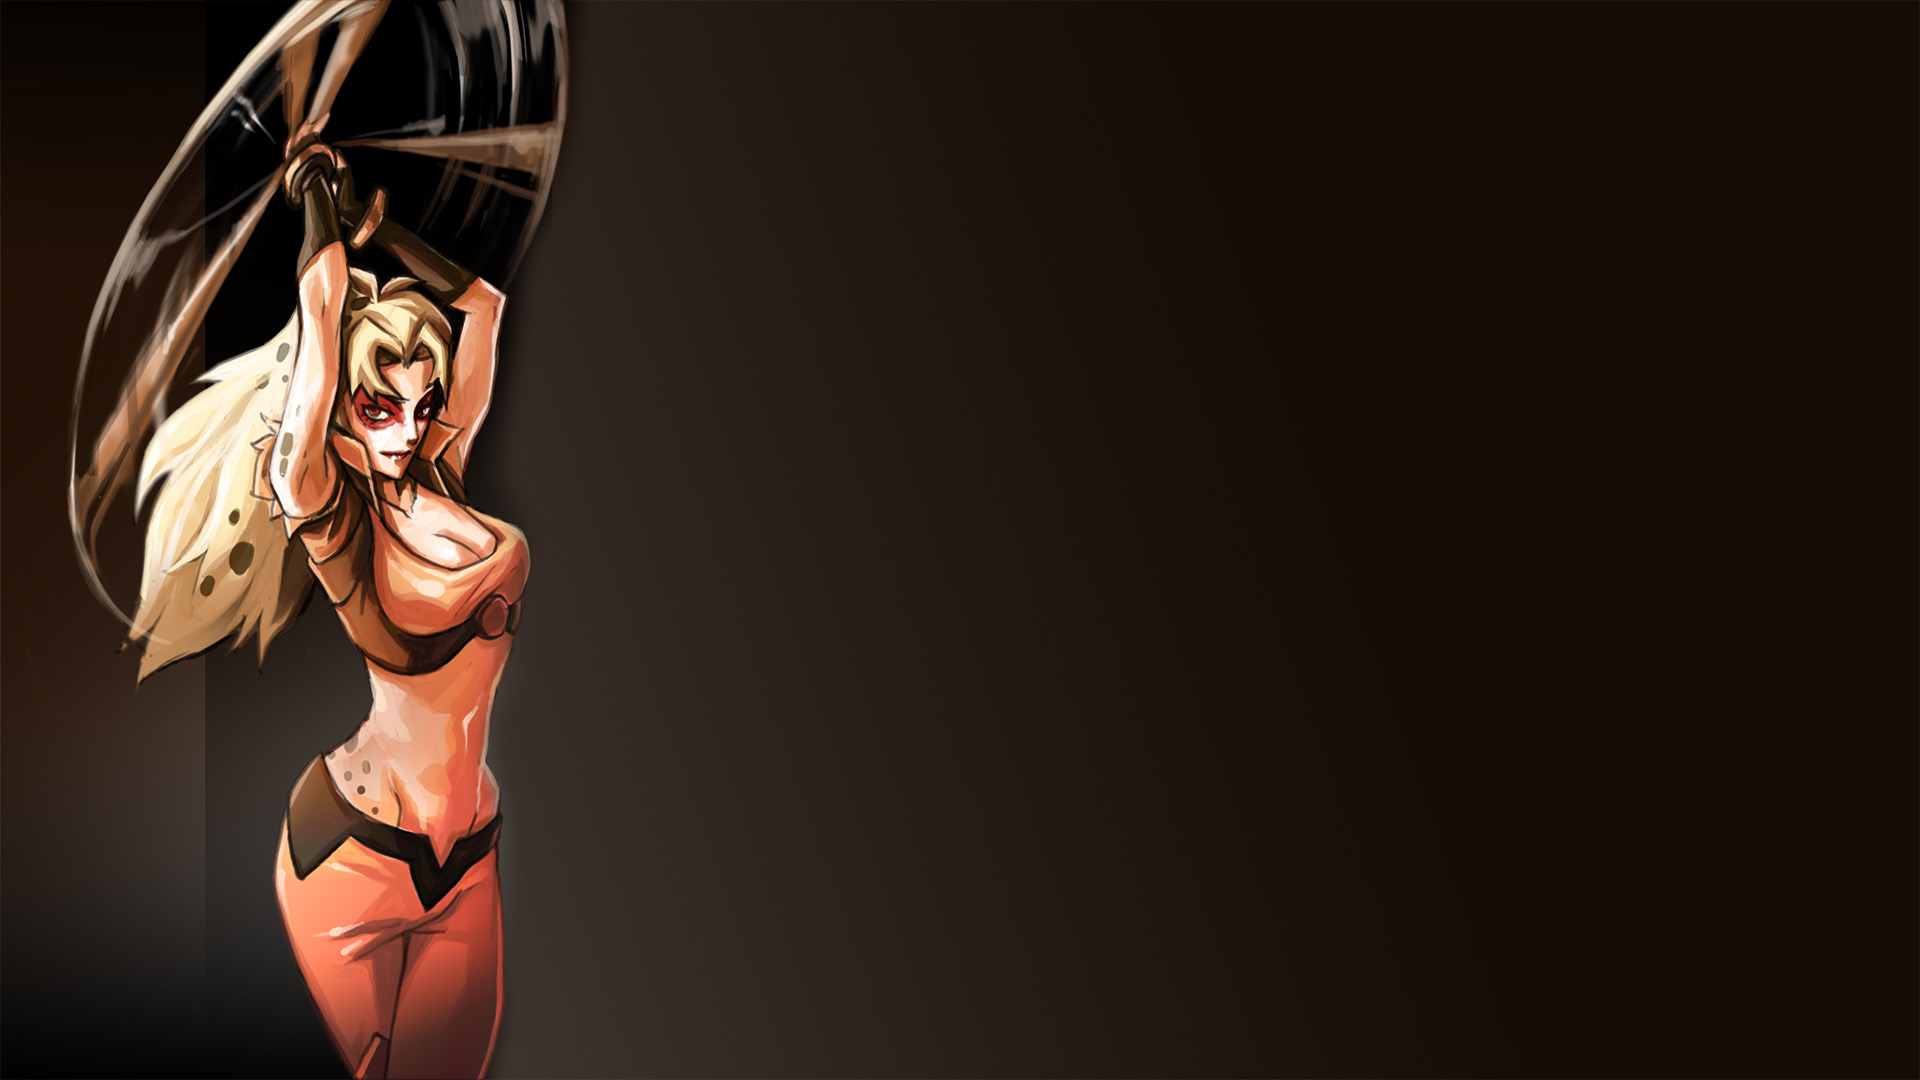 Thundercats Wallpapers, Pictures, Images